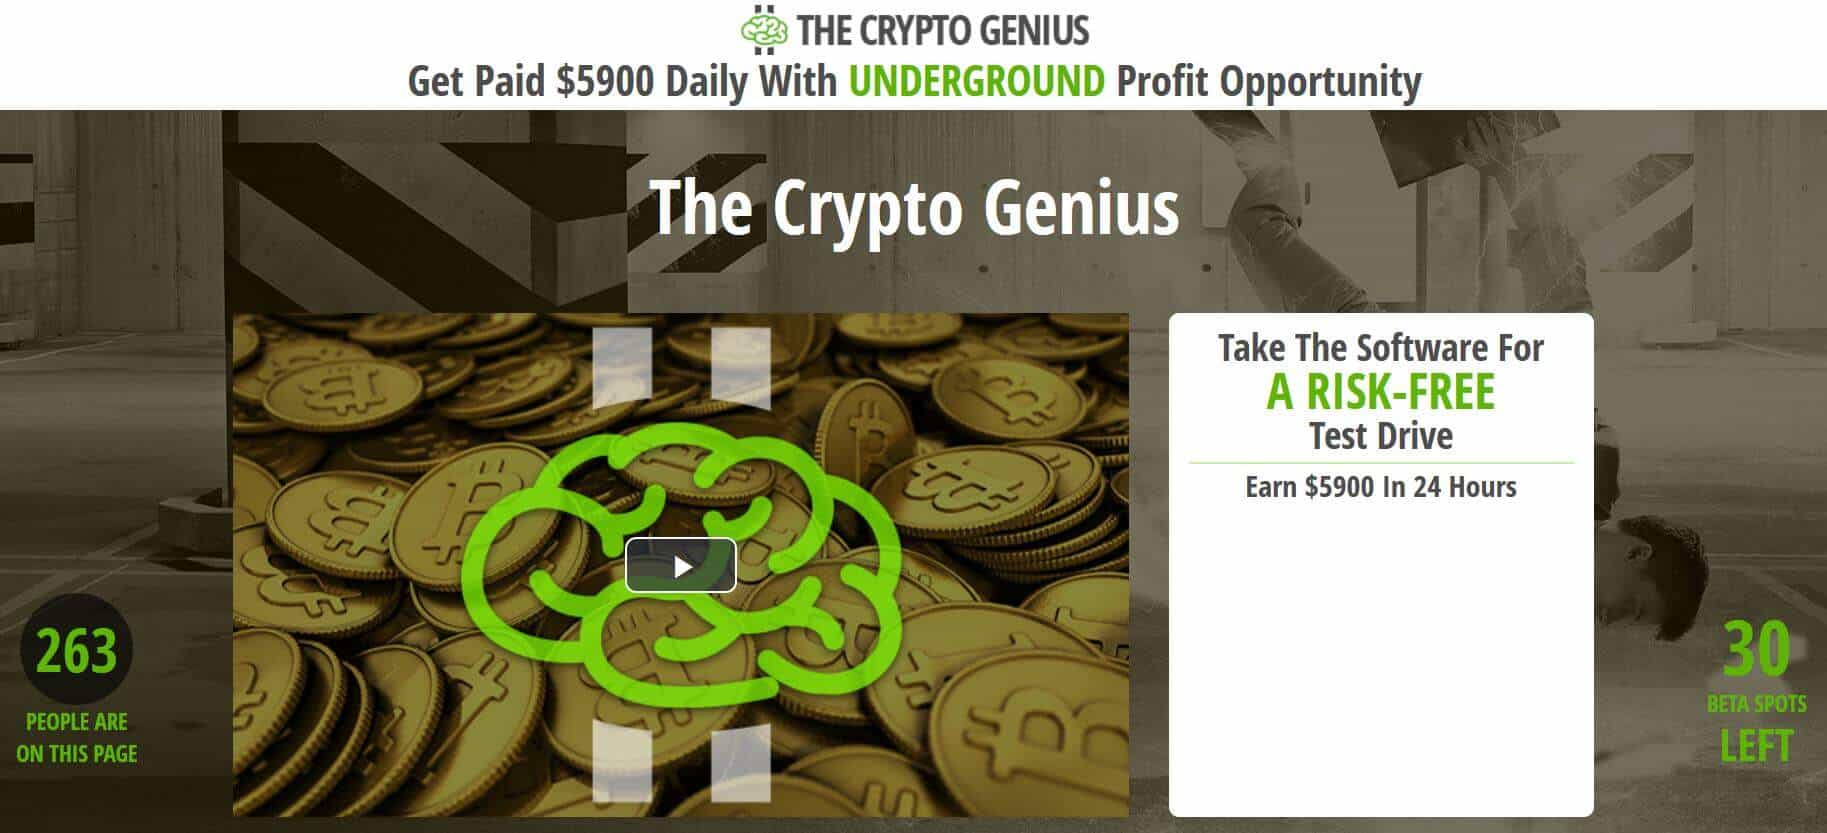 Homepage of Crypto Genius